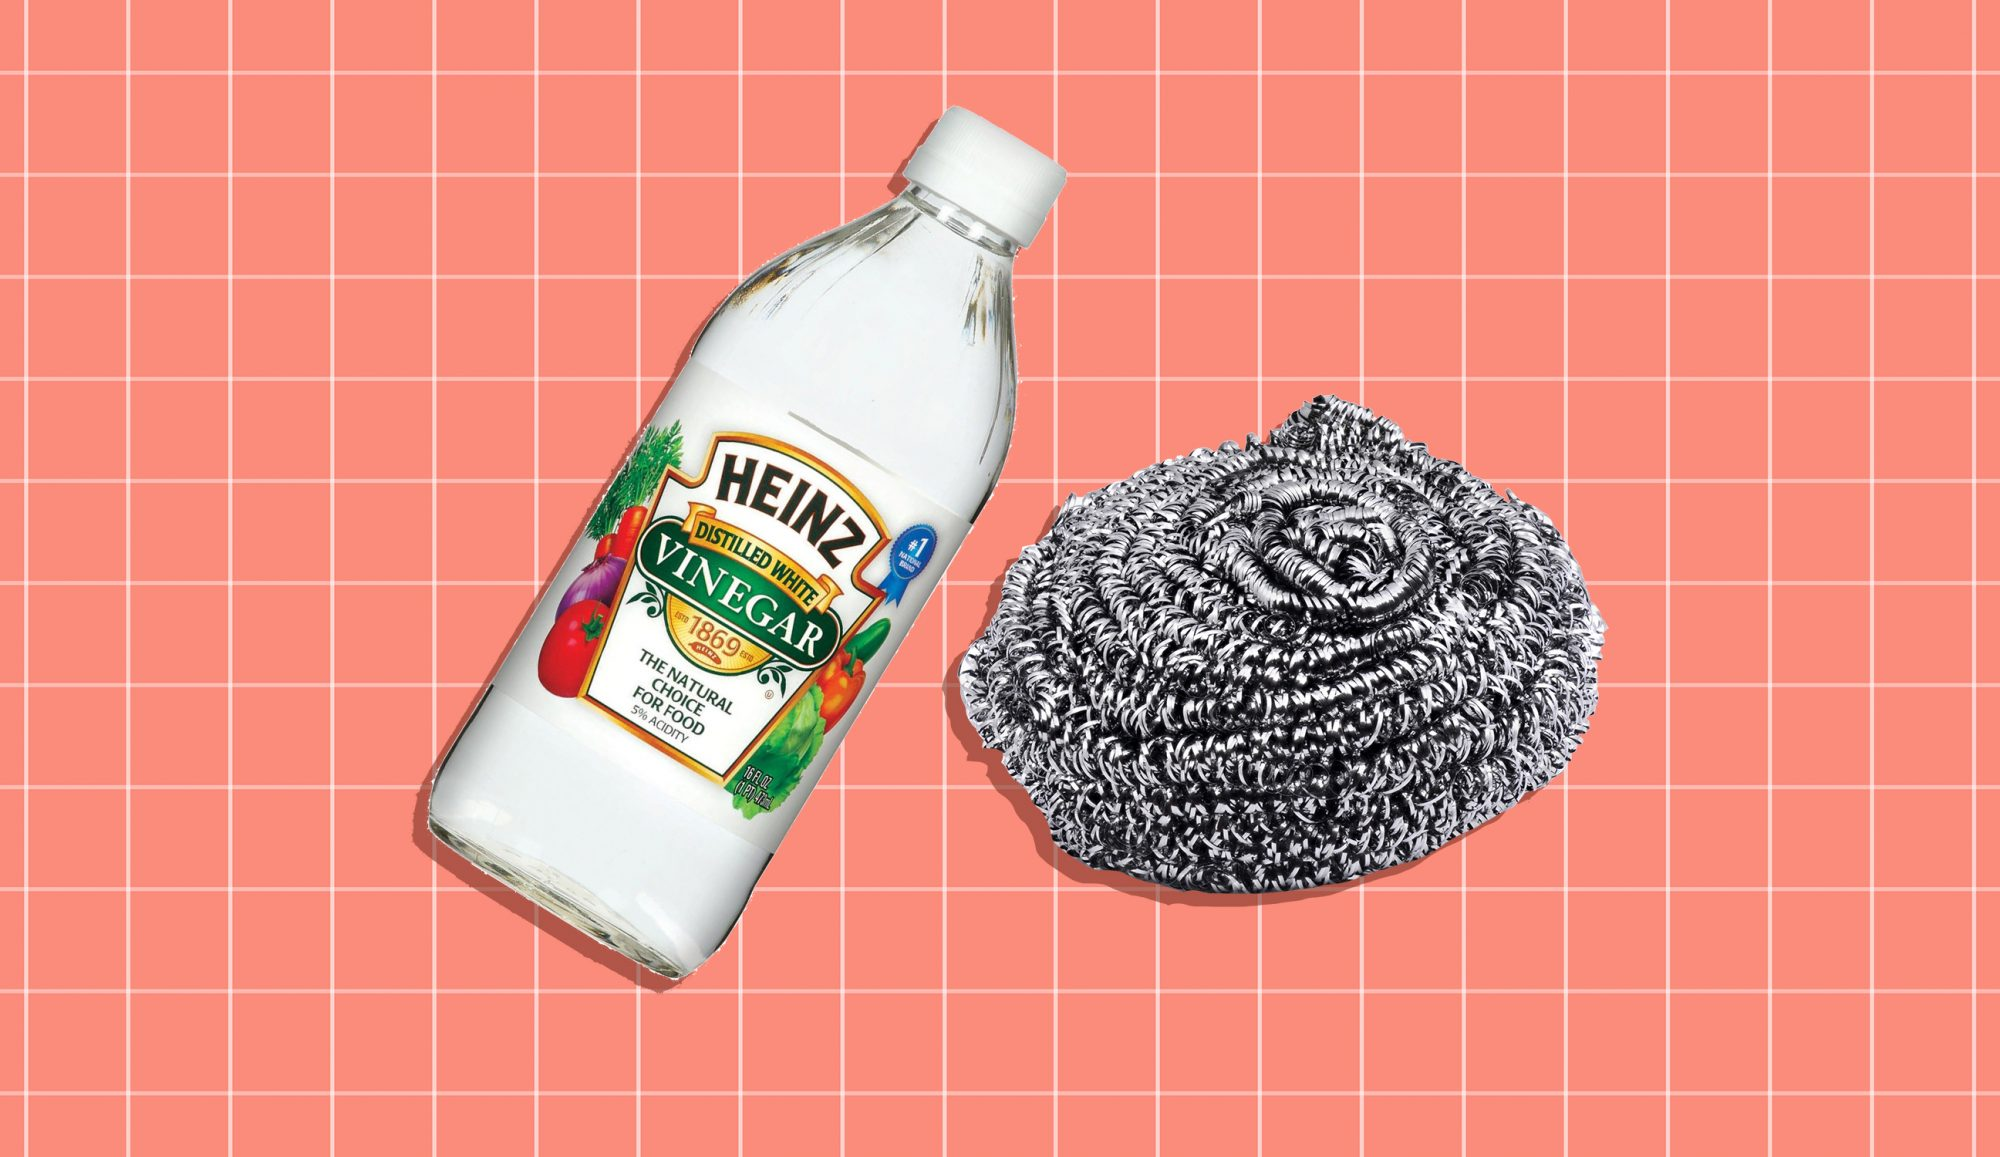 Things Only Professional Cleaners Know, vinegar and stainless steel cleaner